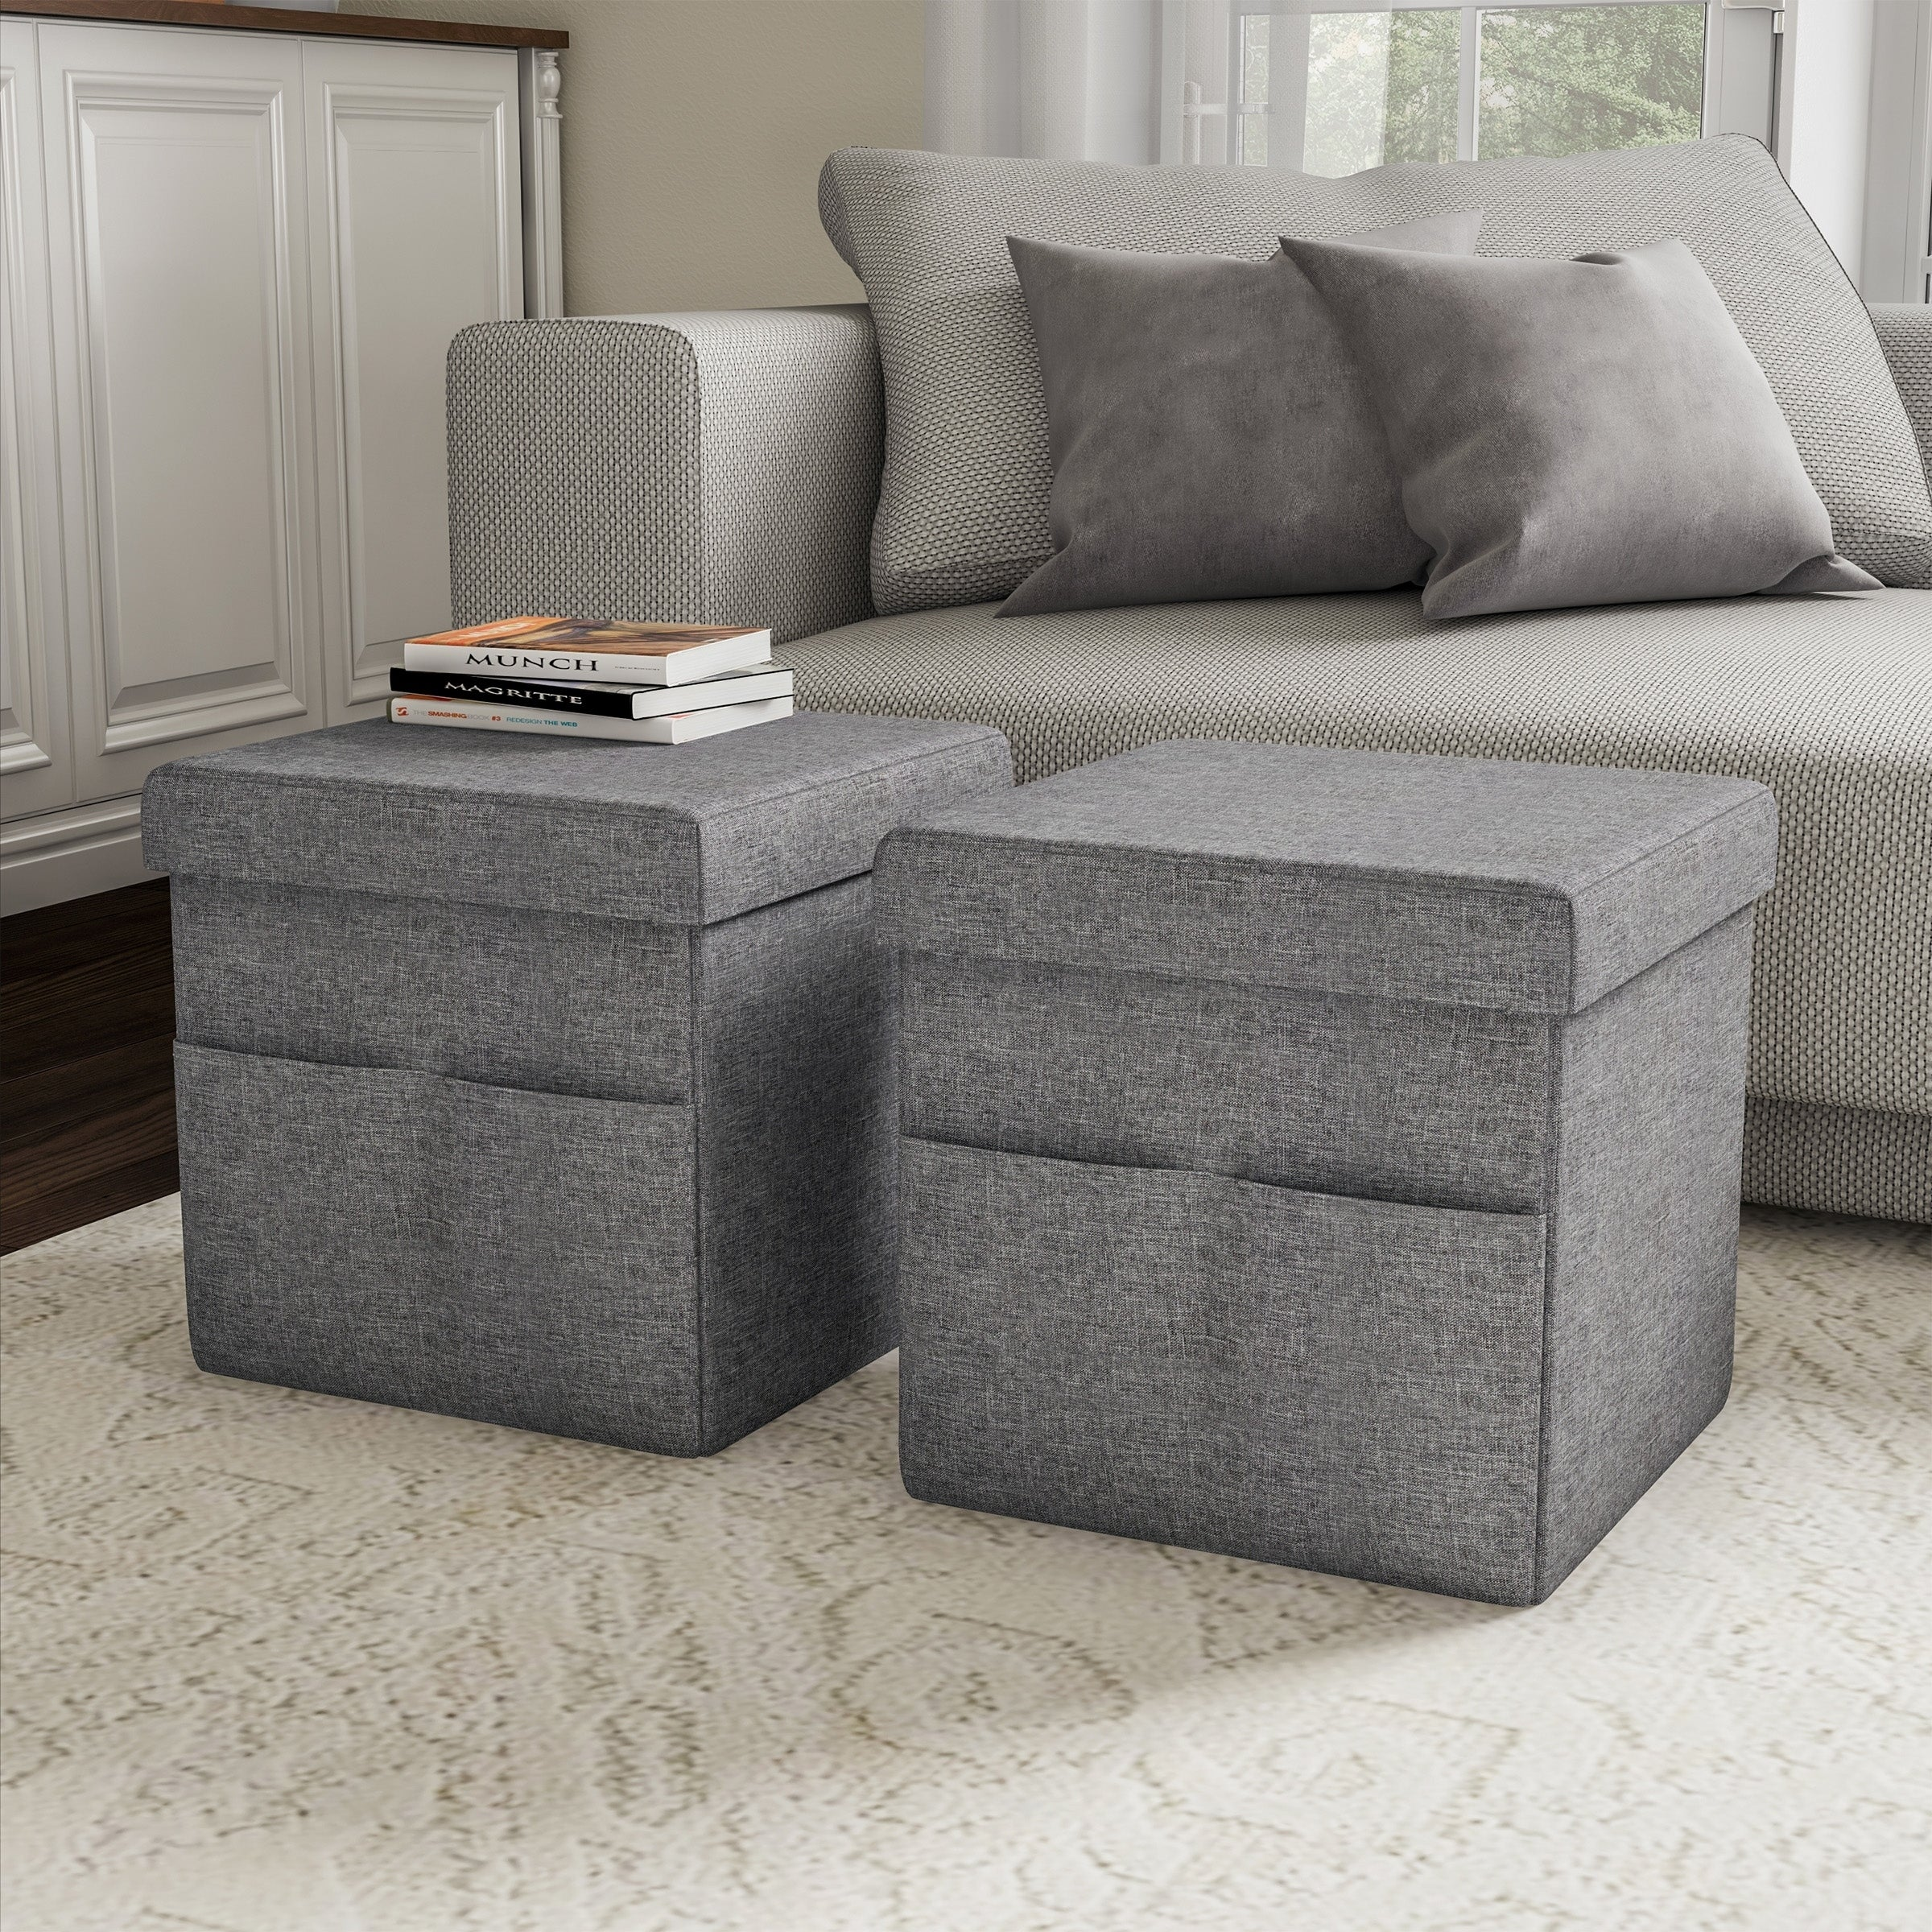 Foldable Storage Cube Ottoman With Pockets Multipurpose Footrest Organizer By Lavish Home